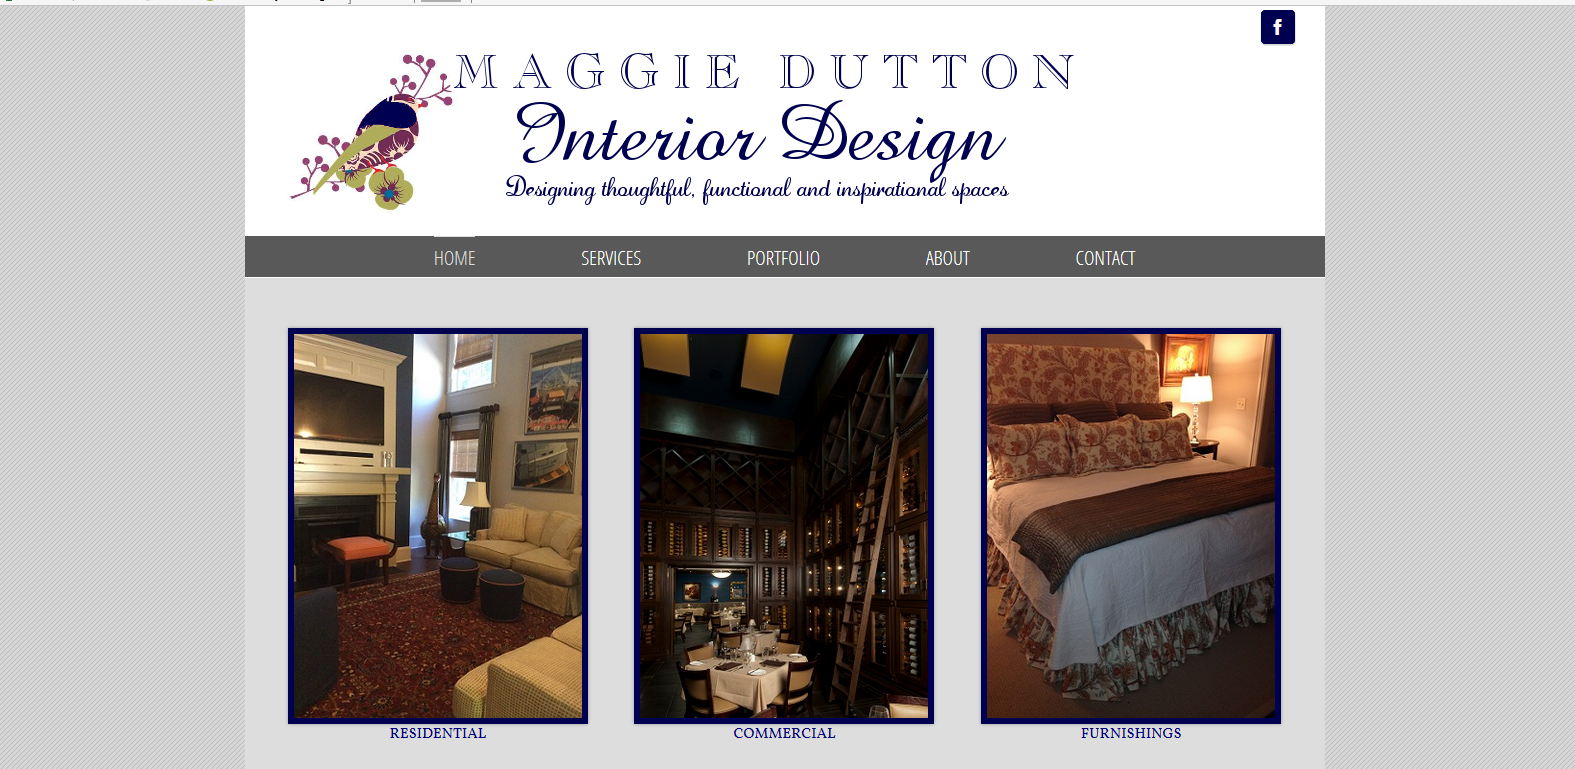 Maggie Dutton Interior Design